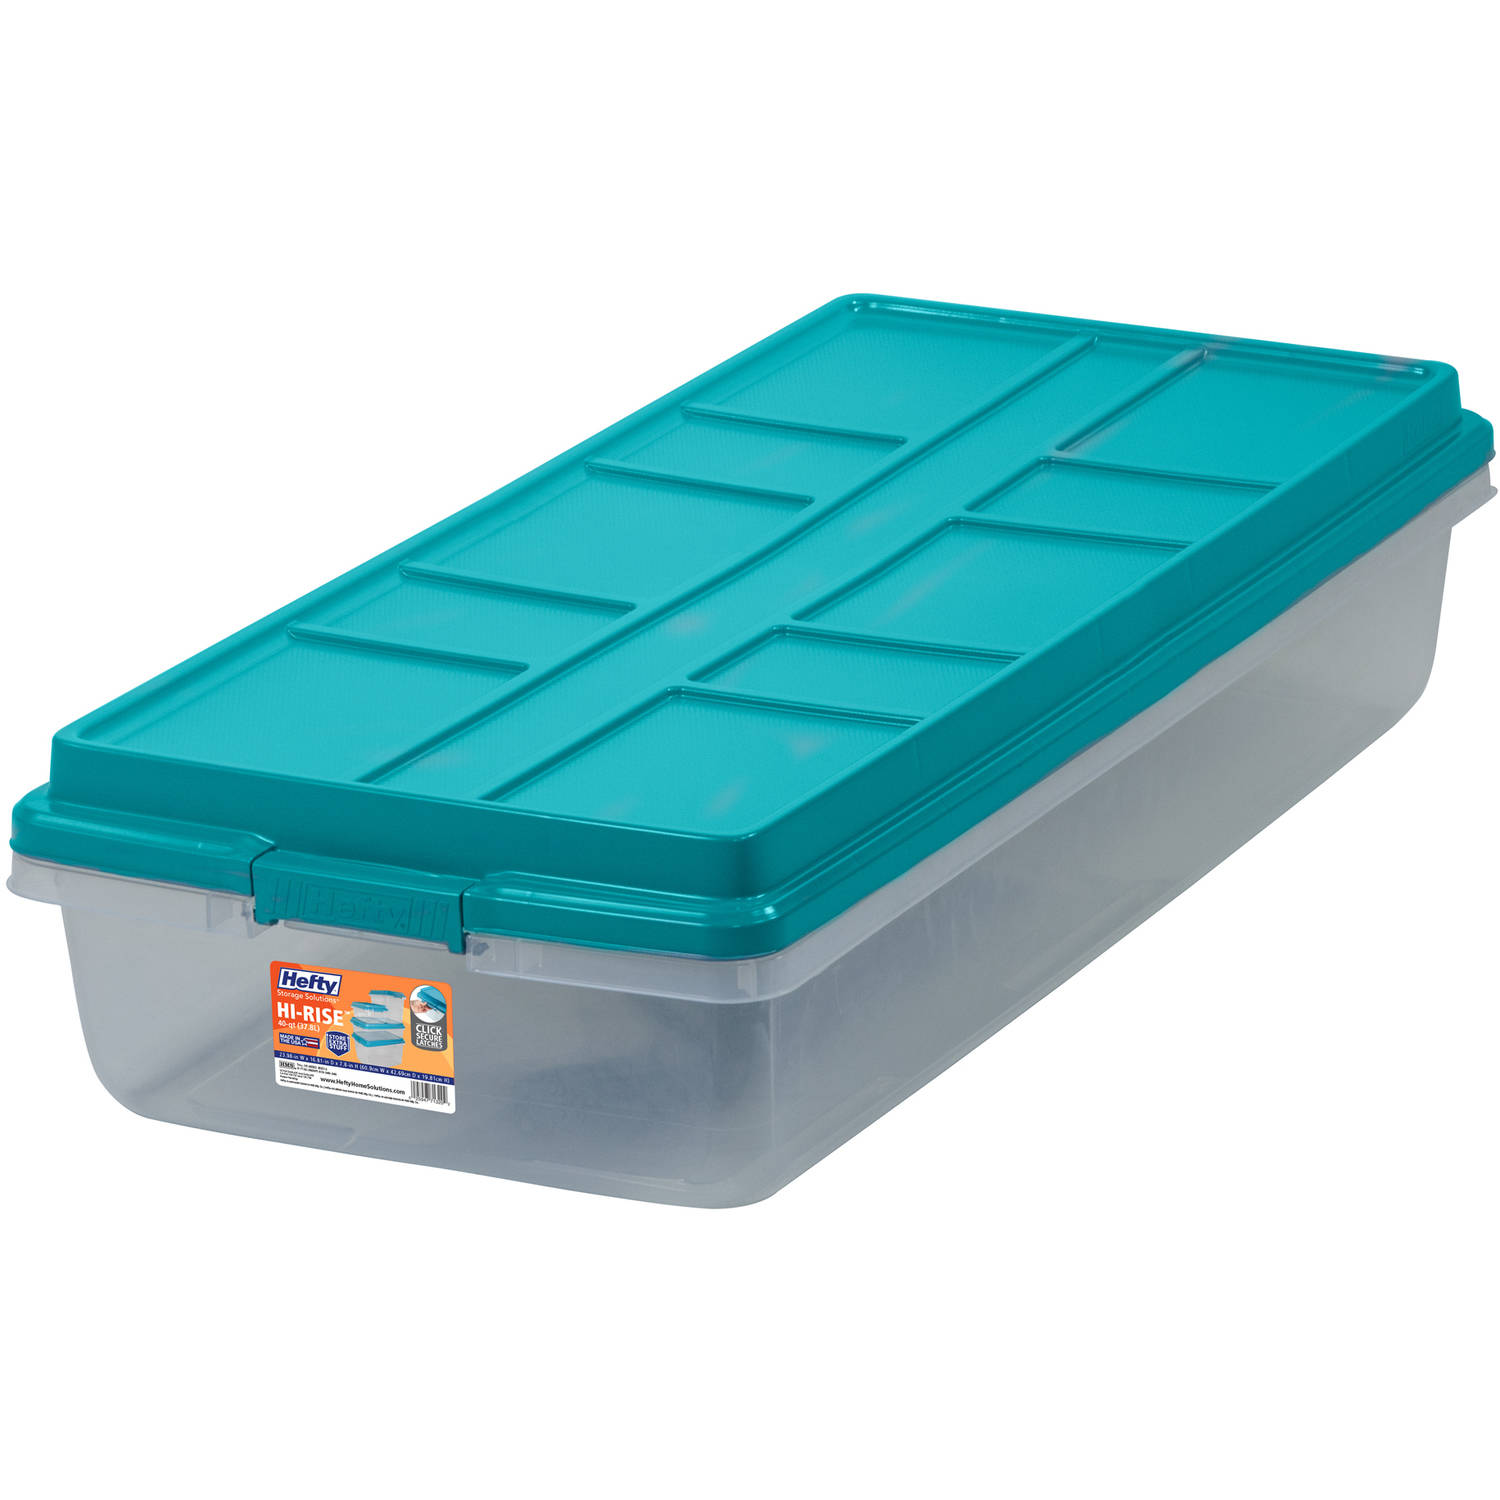 Hefty 63-Qt Hi-Rise Clear Latch Box, Teal Sachet Lid and Handles